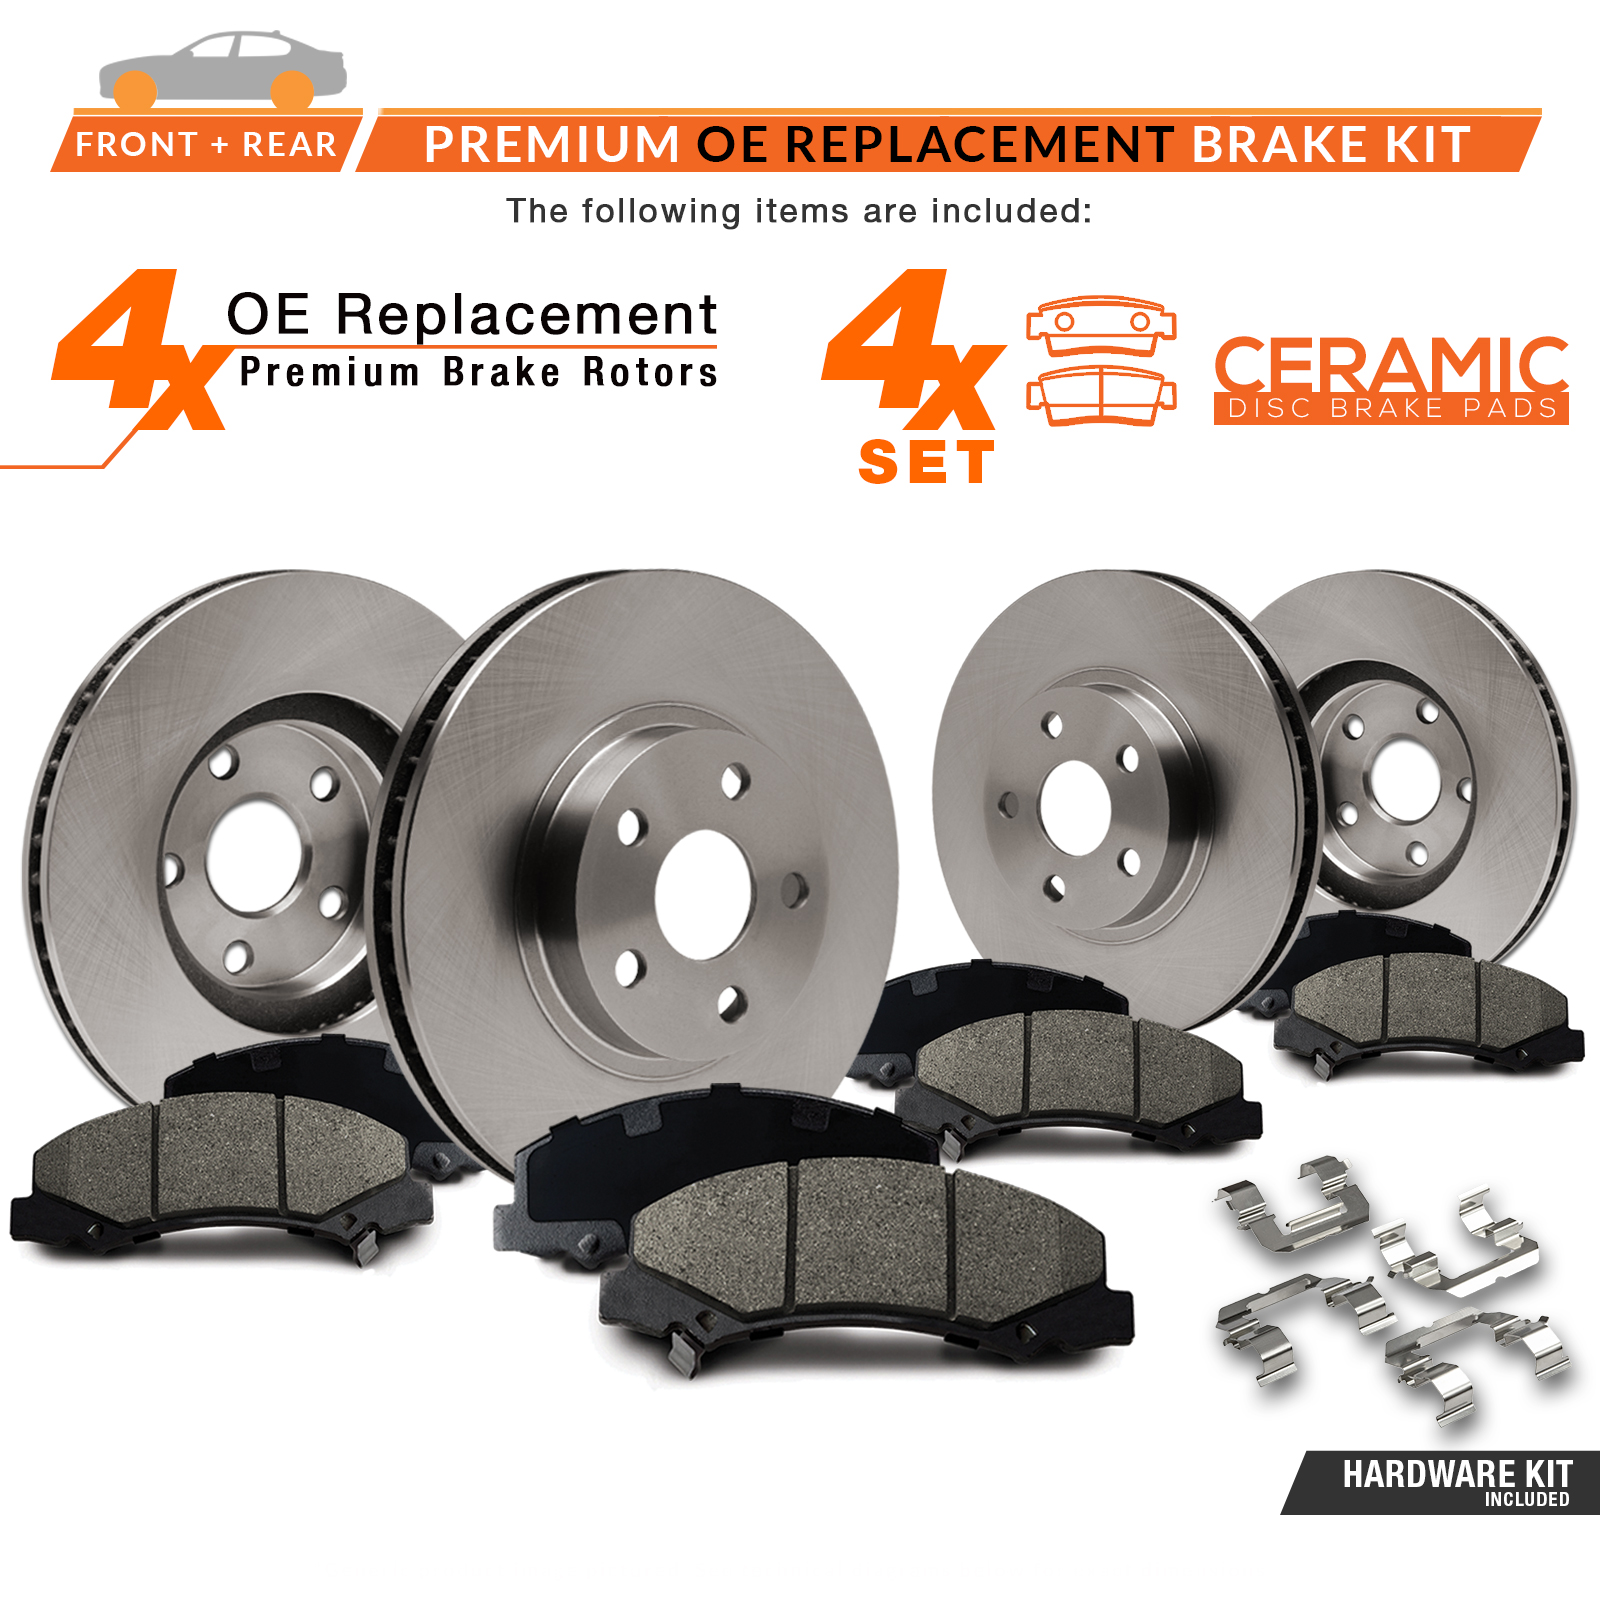 FRONT-REAR-OE-Replacement-Brake-Rotors-with-Ceramic-Pads-amp-Hardware-Kit thumbnail 2